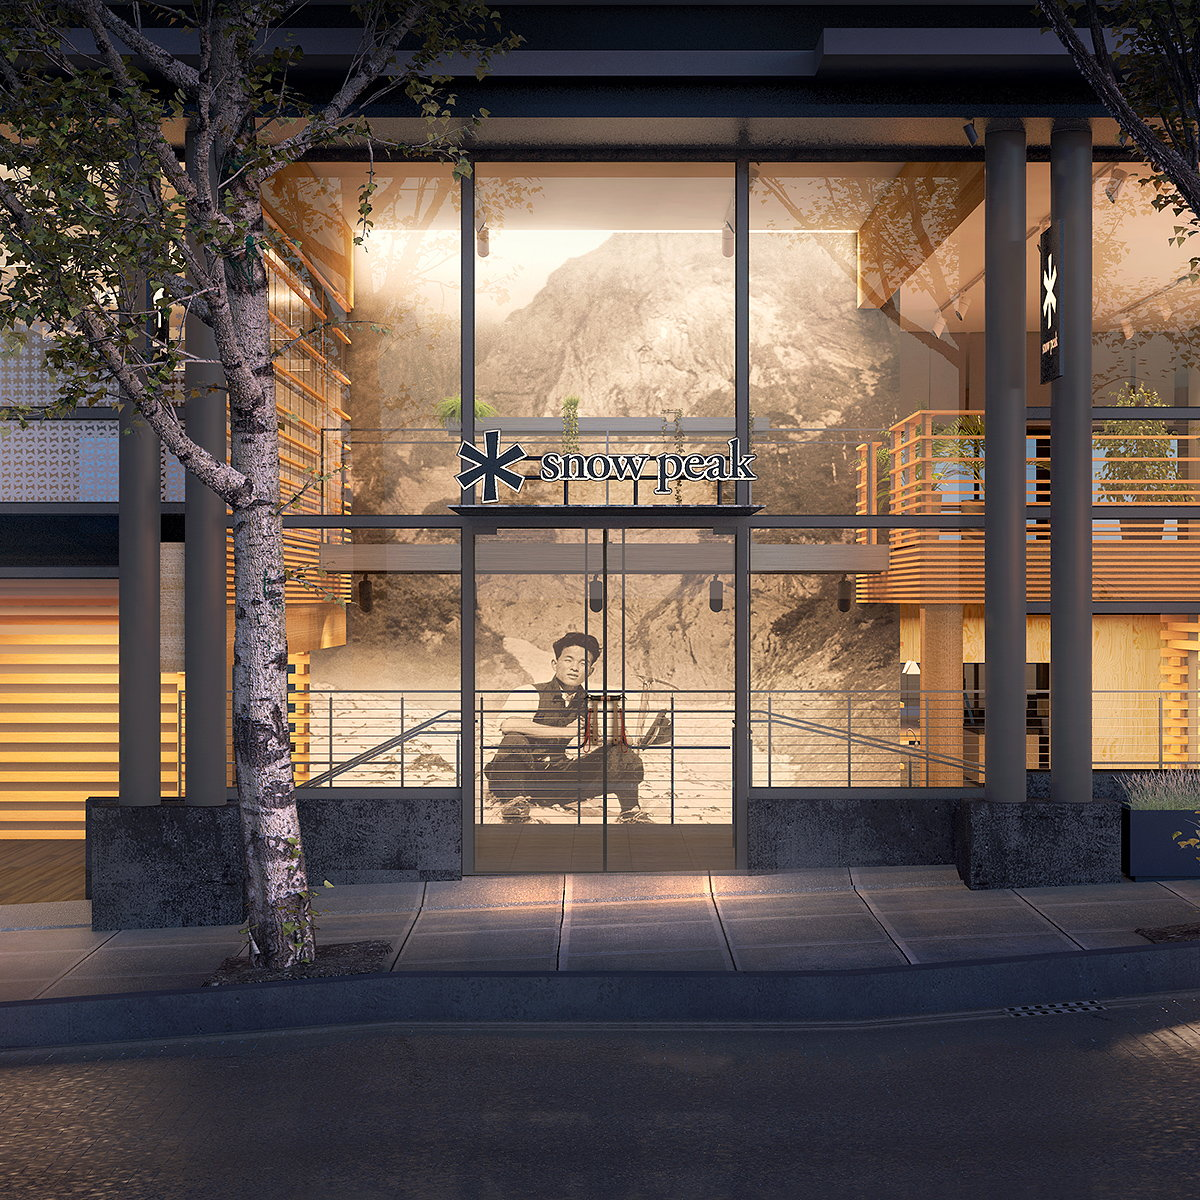 Skylab Unveils Designs for Snow Peak HQ in Portland, Oregon